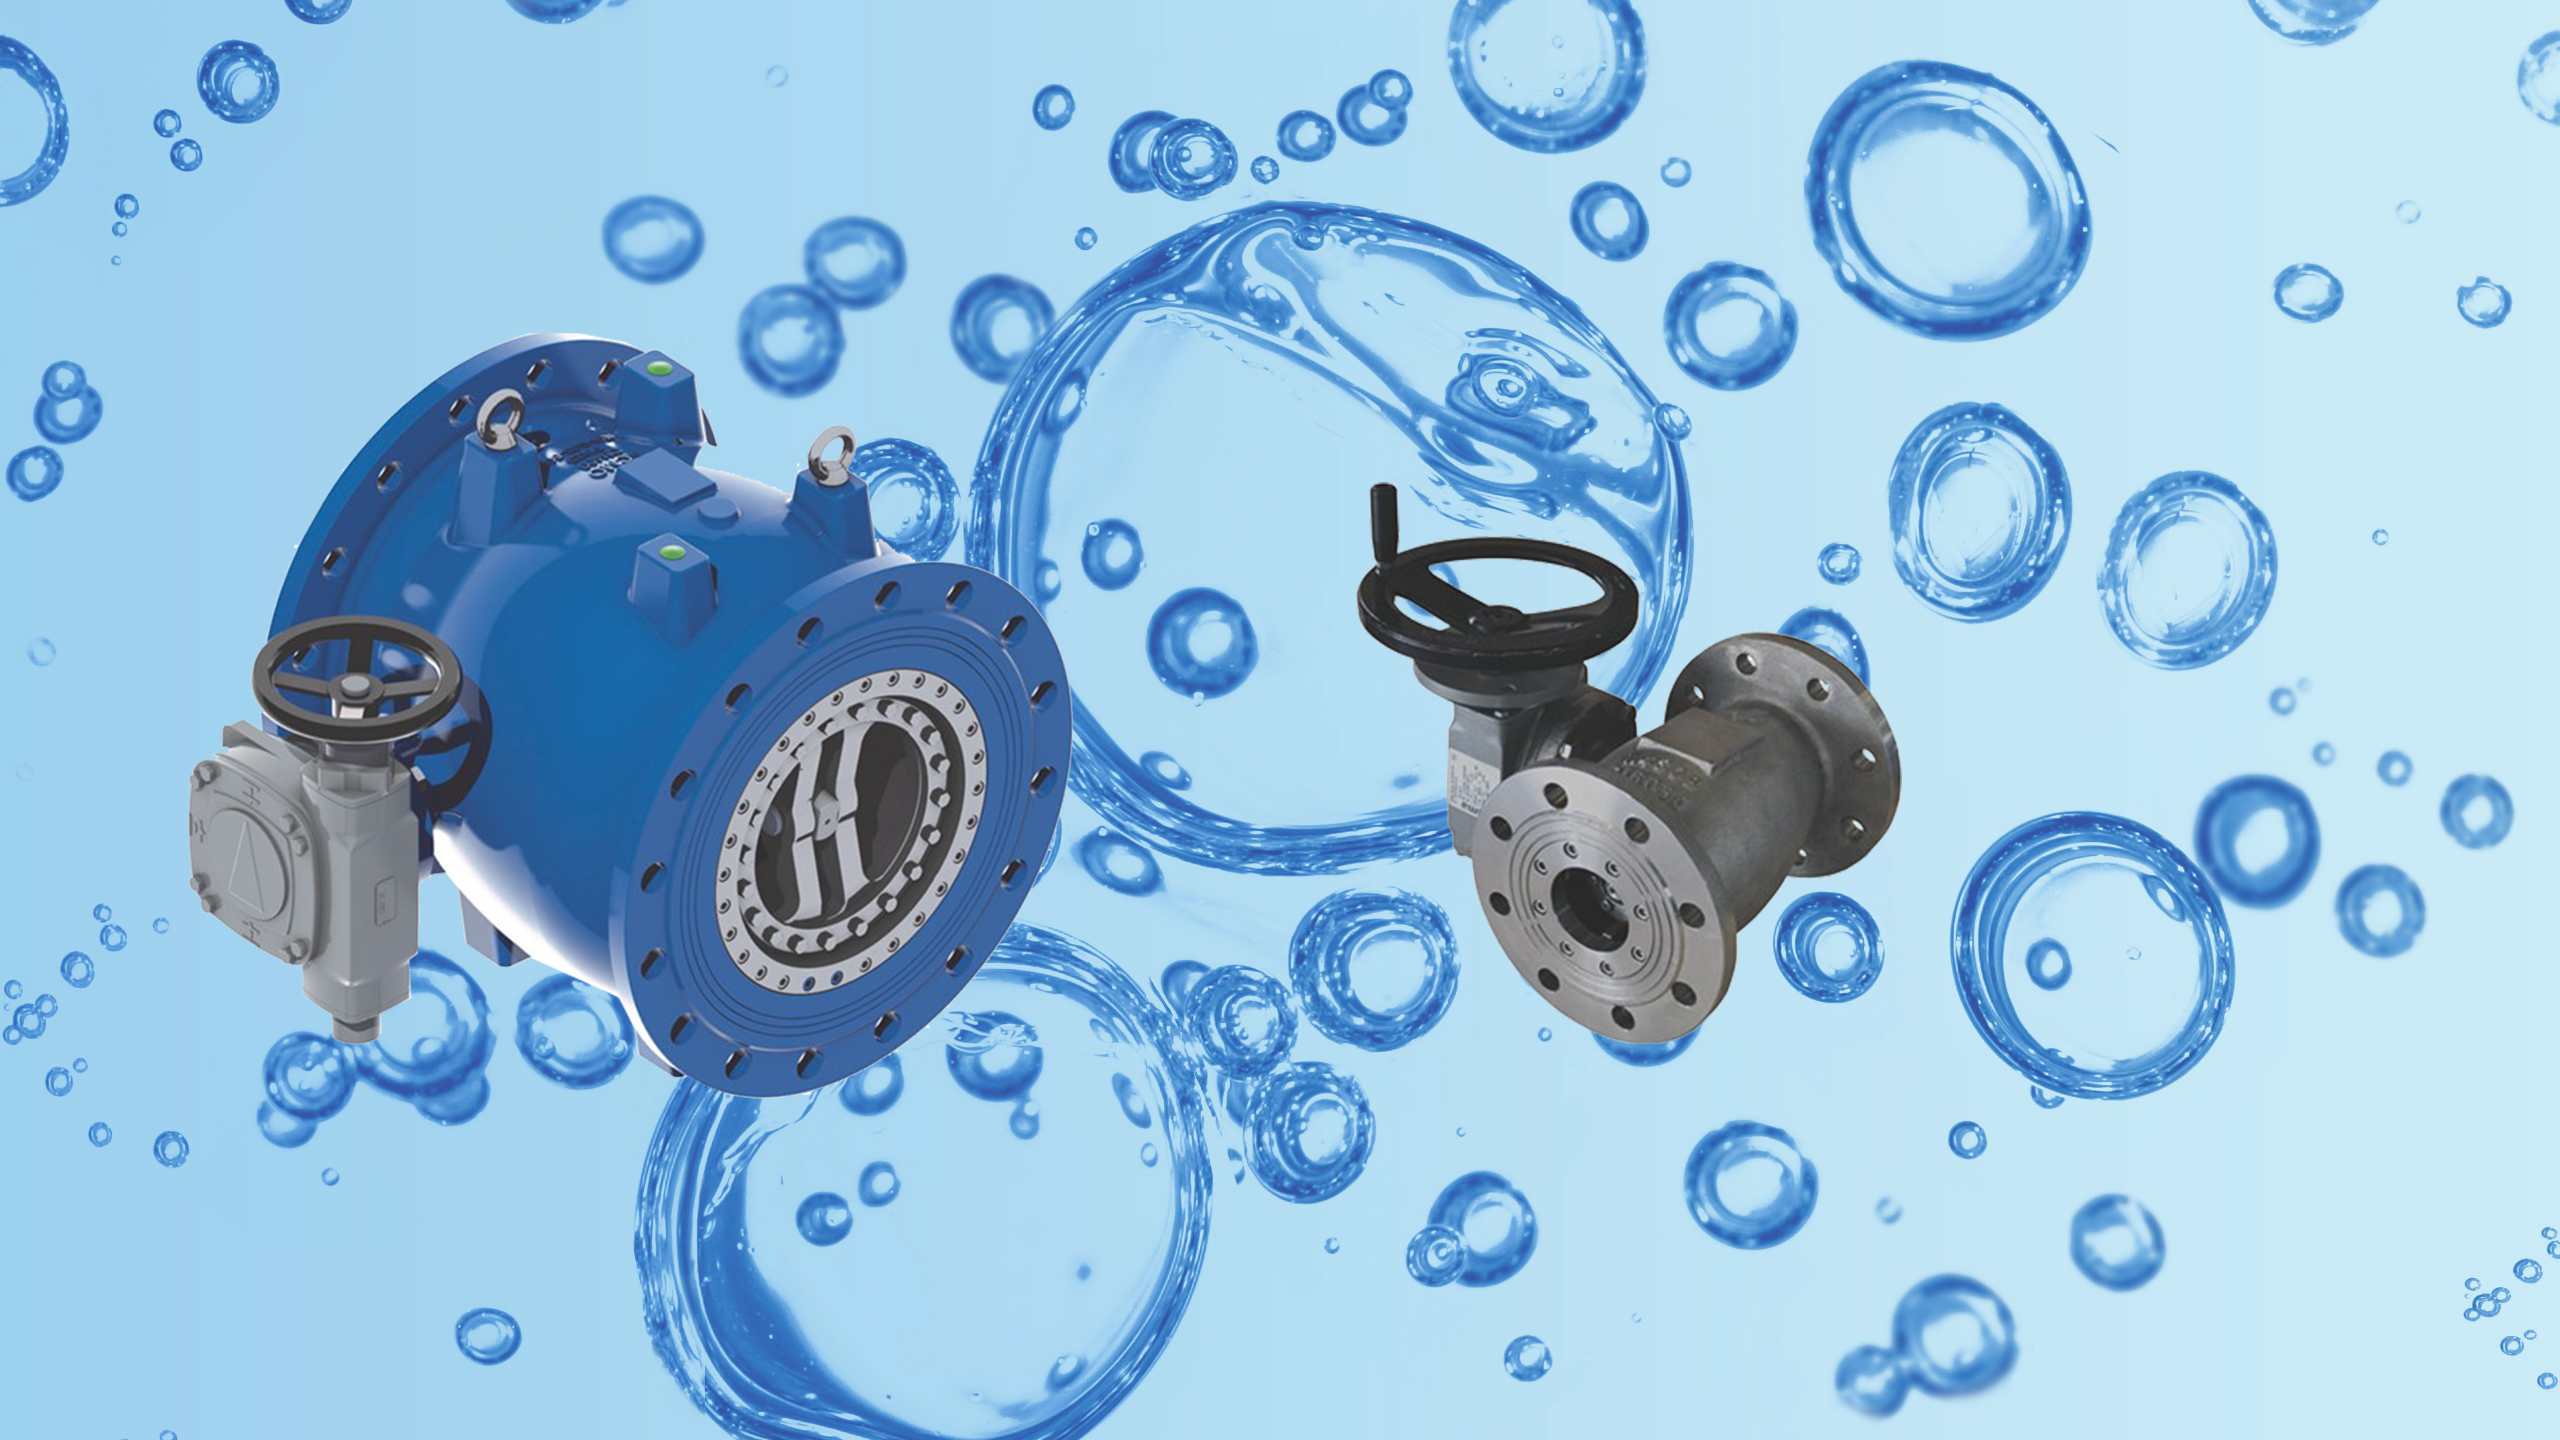 Introducing our range of needle valves